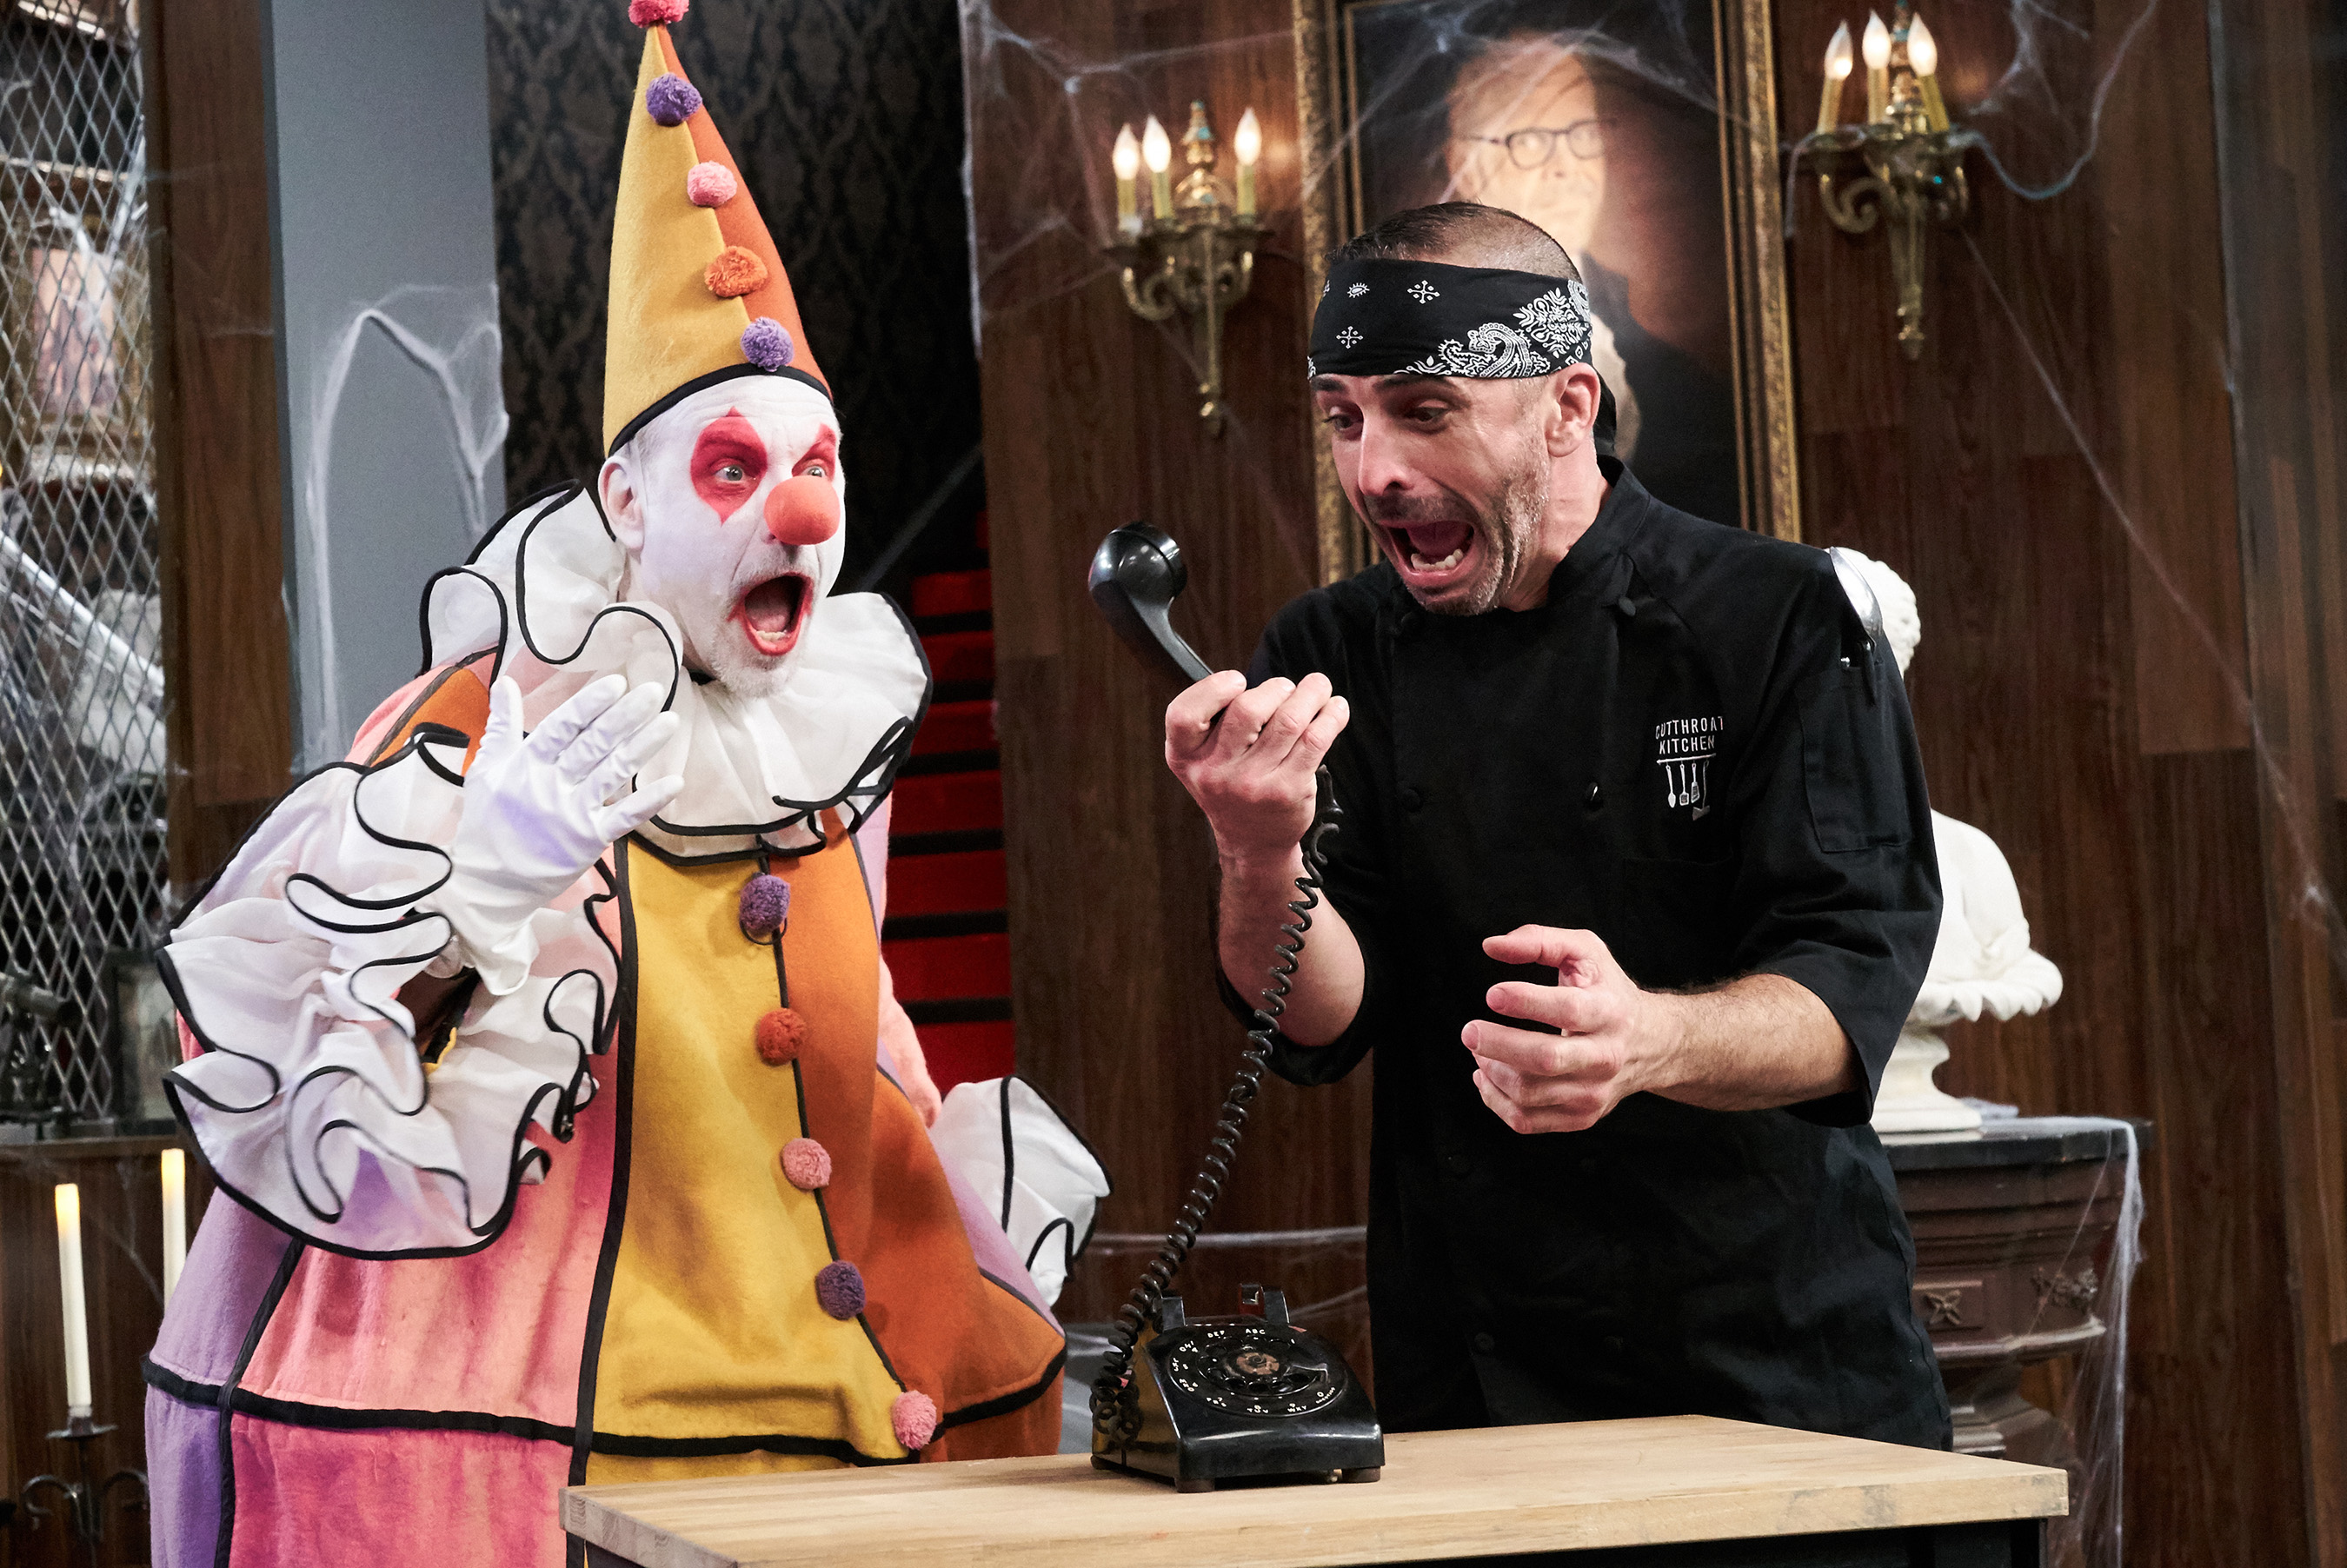 Get Ready For Halloween With Crafty Chefs And Spine Chilling